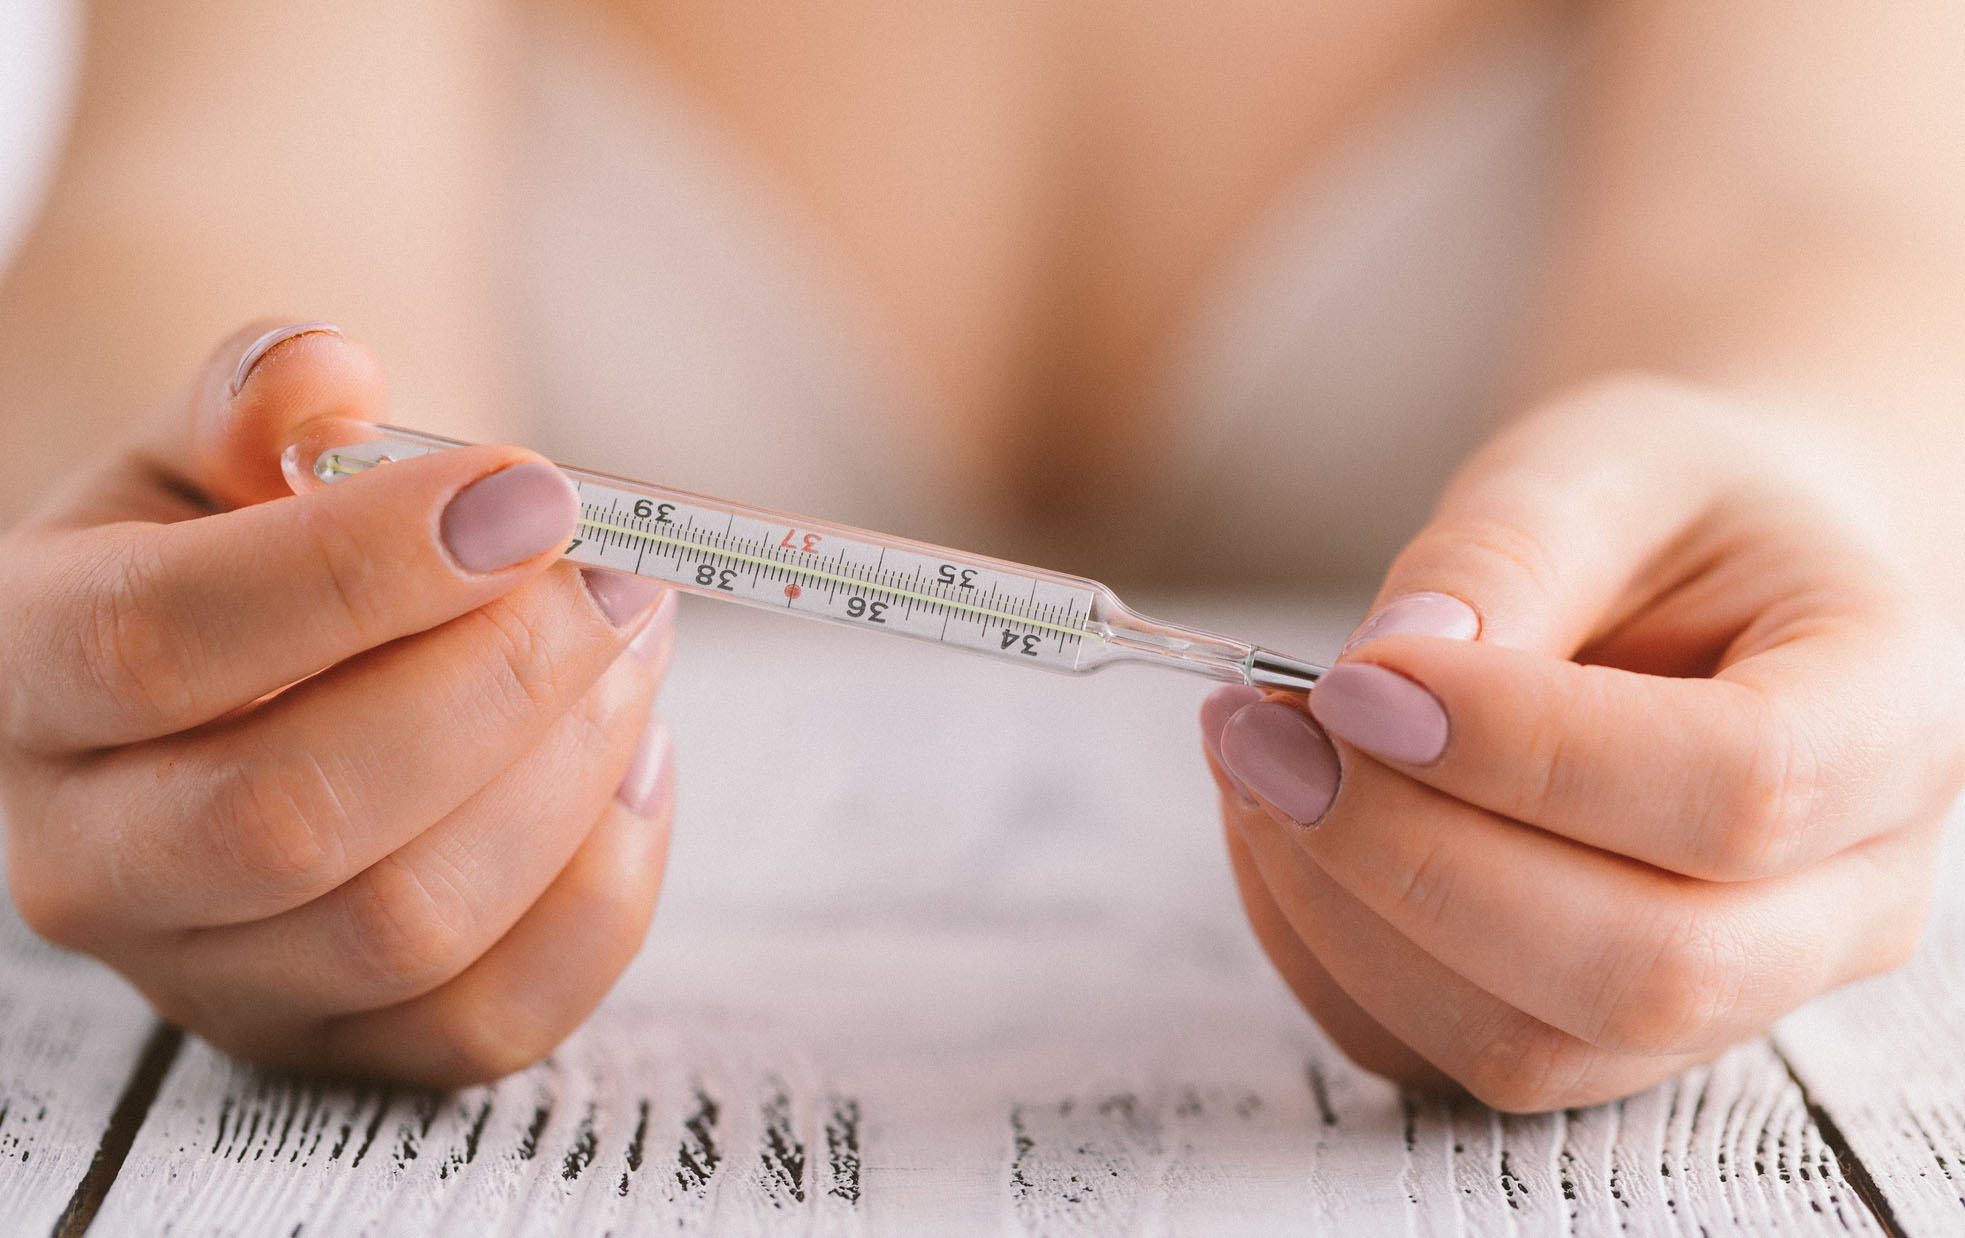 Signs Of Ovulation-6 Advanced Signs You're Ovulating